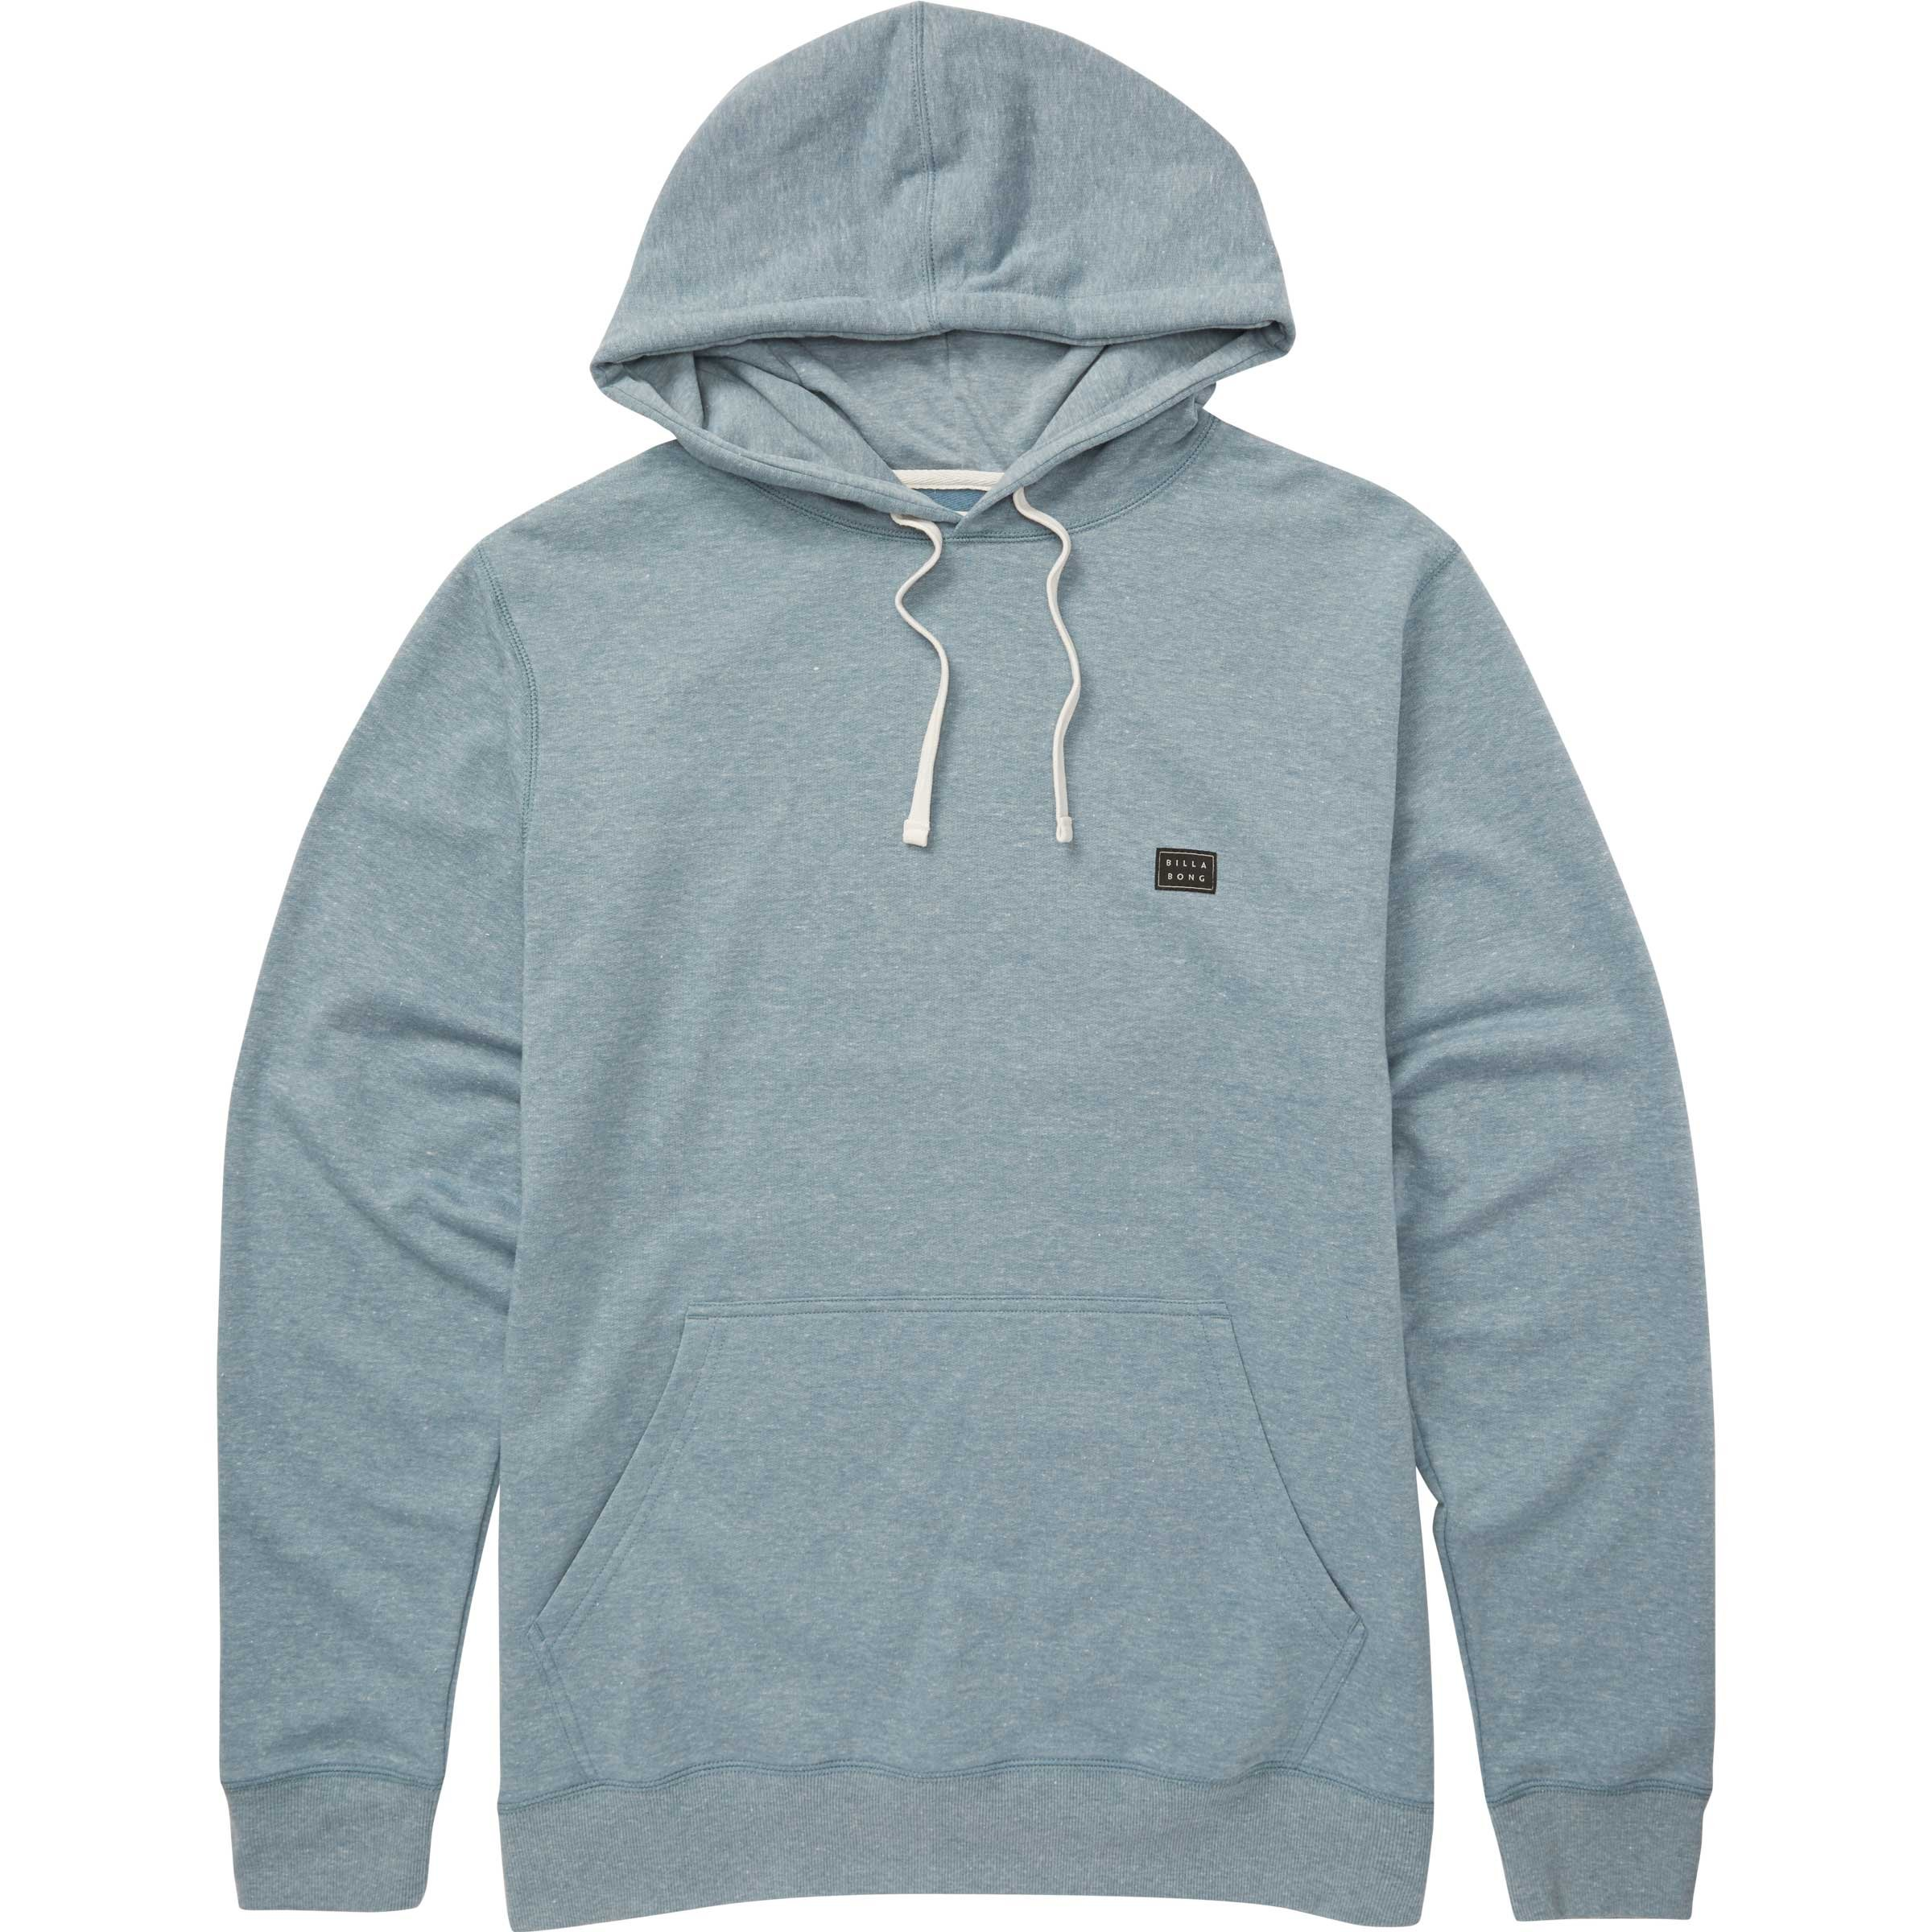 Billabong Men's All Day Pullover Hoody, Washed Blue, XL